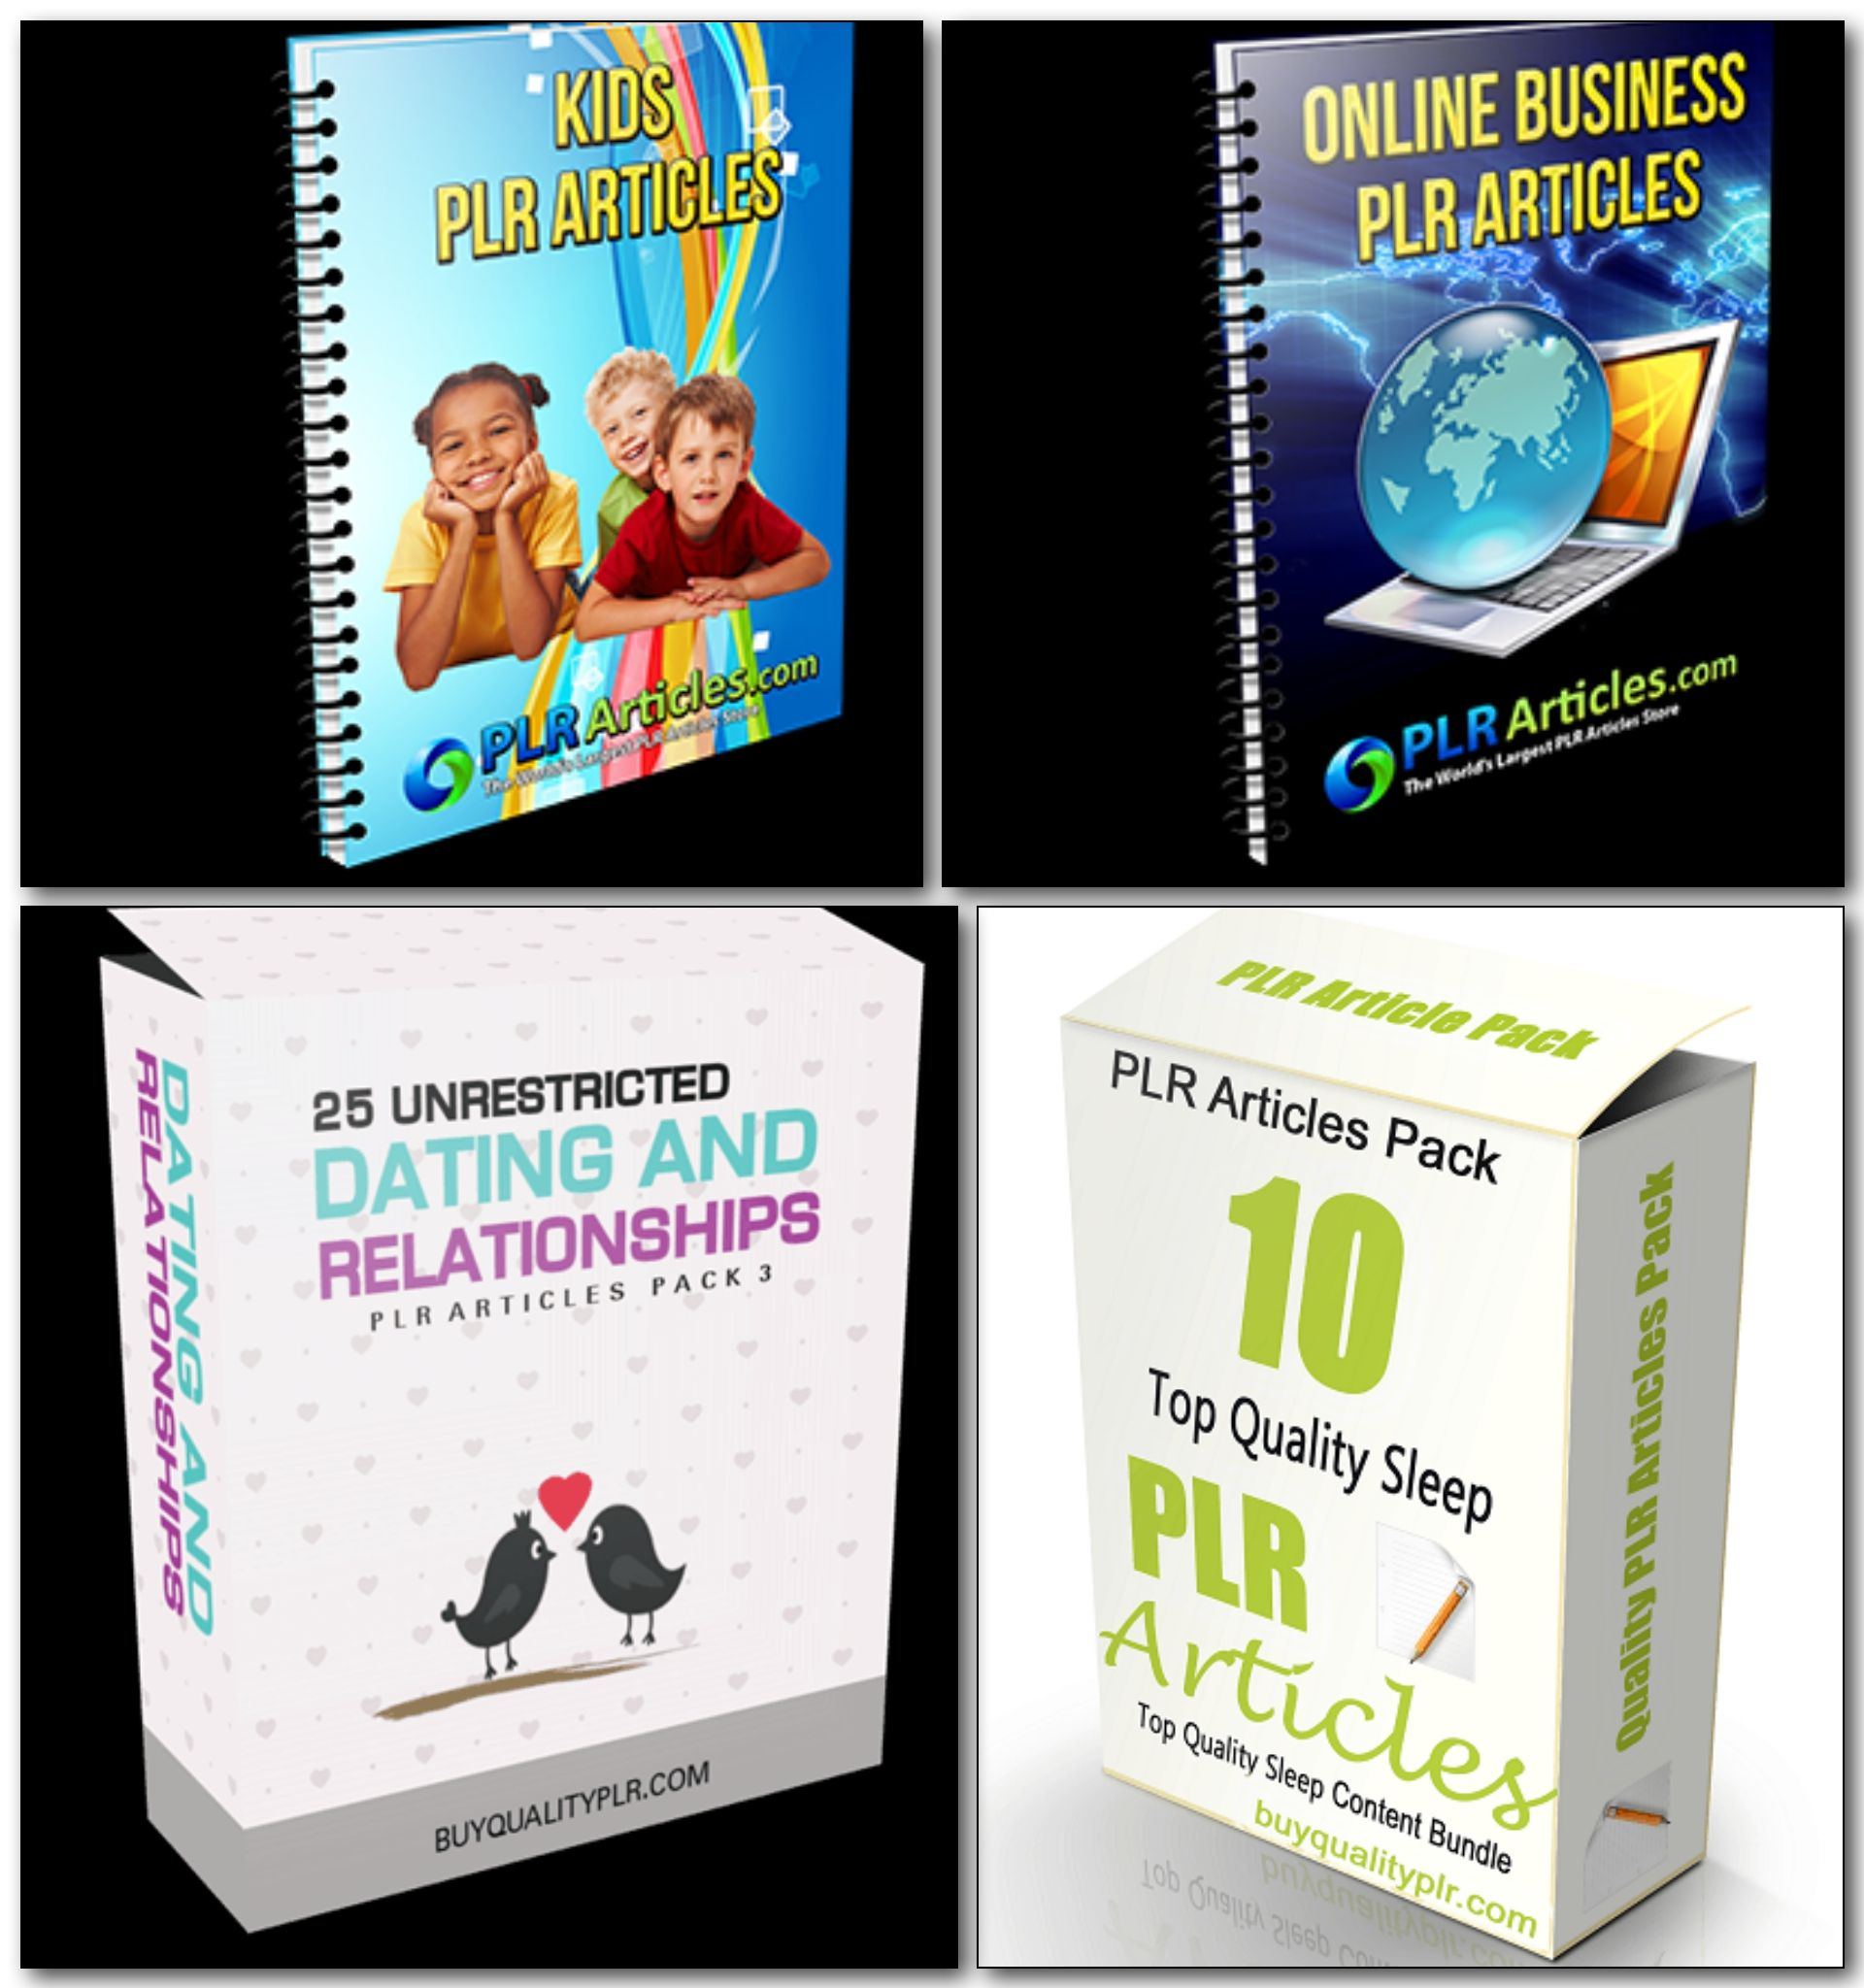 Idplr Over 12 500 Products With Private Label And Resale Rights Licenses Dating Relationships Online Business Clickbank